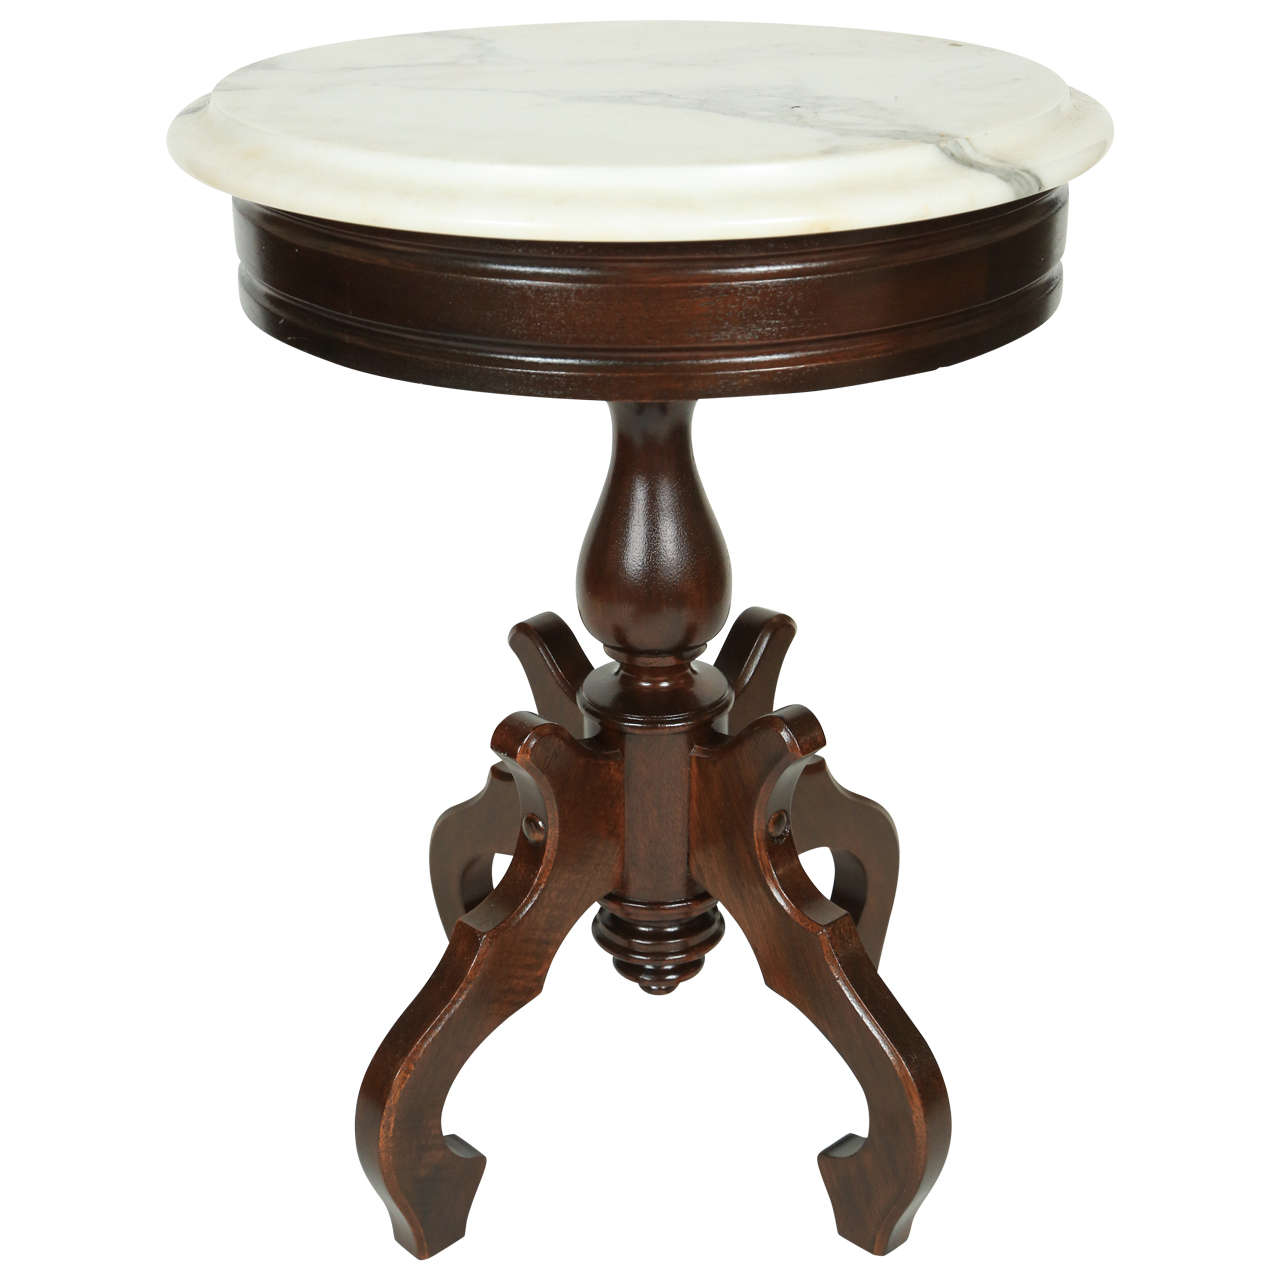 Victorian Gany Table With Marble Top At 1stdibs